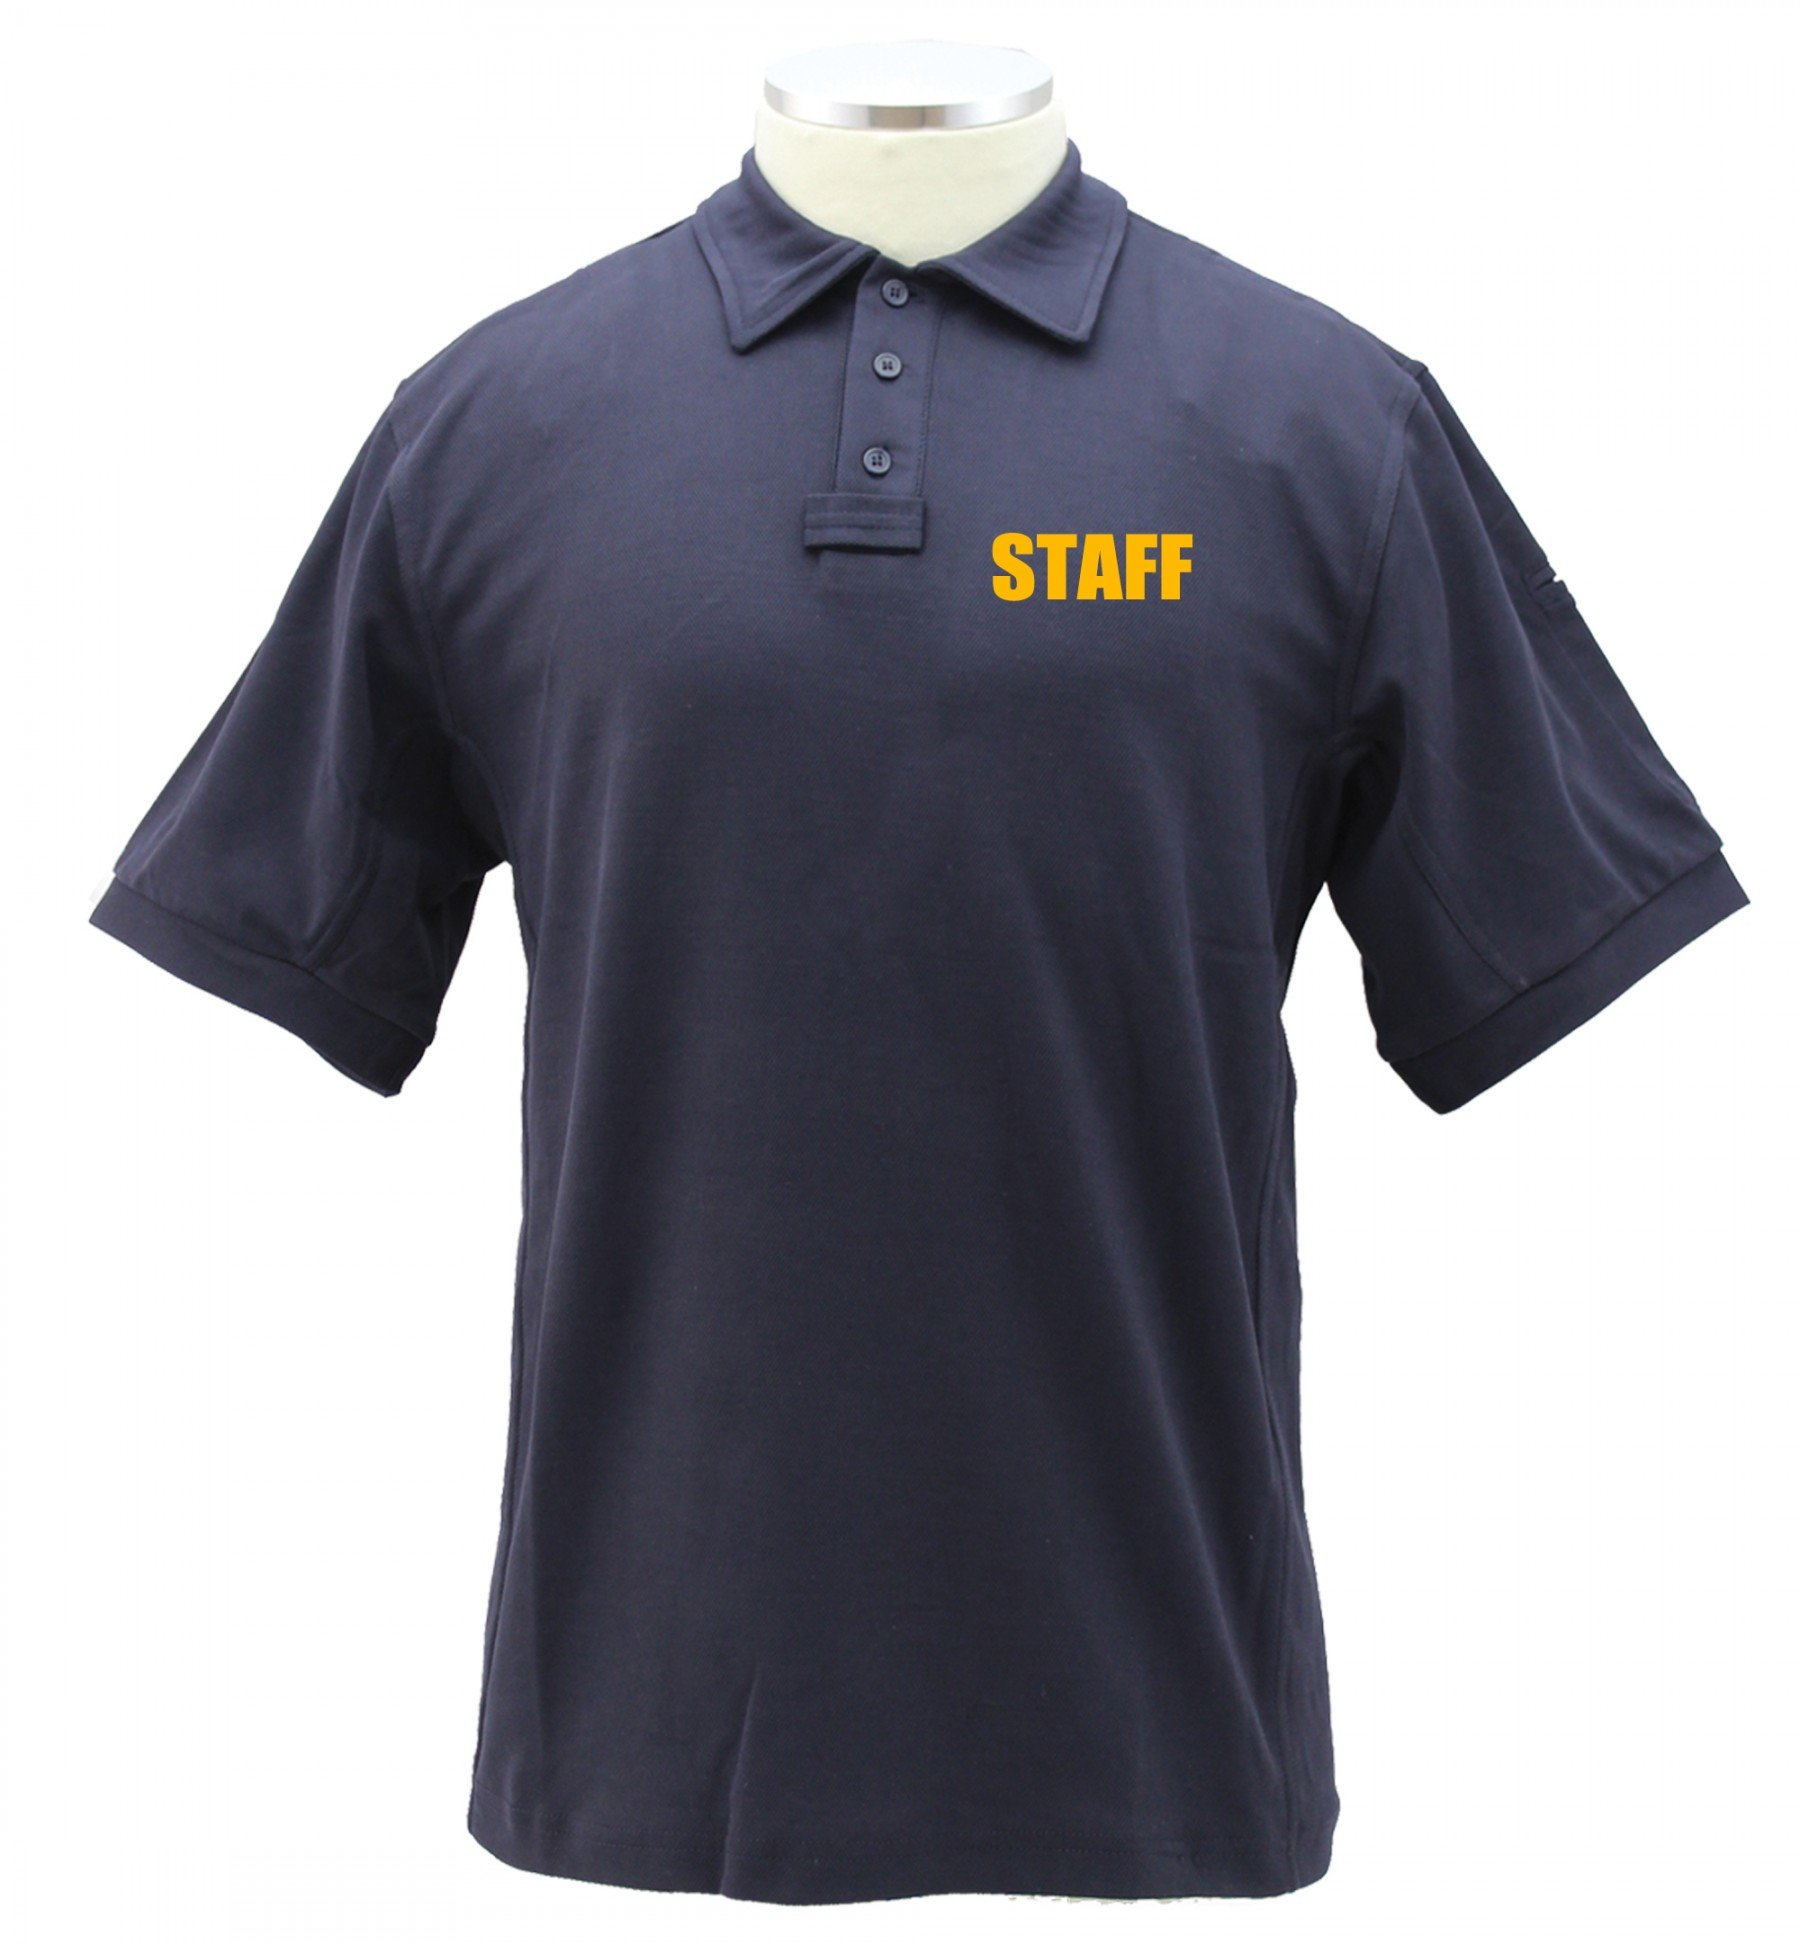 First Class Poly/Cotton Tactical Performance Staff Polo Shirts (3X-Large, Navy Blue/Gold)